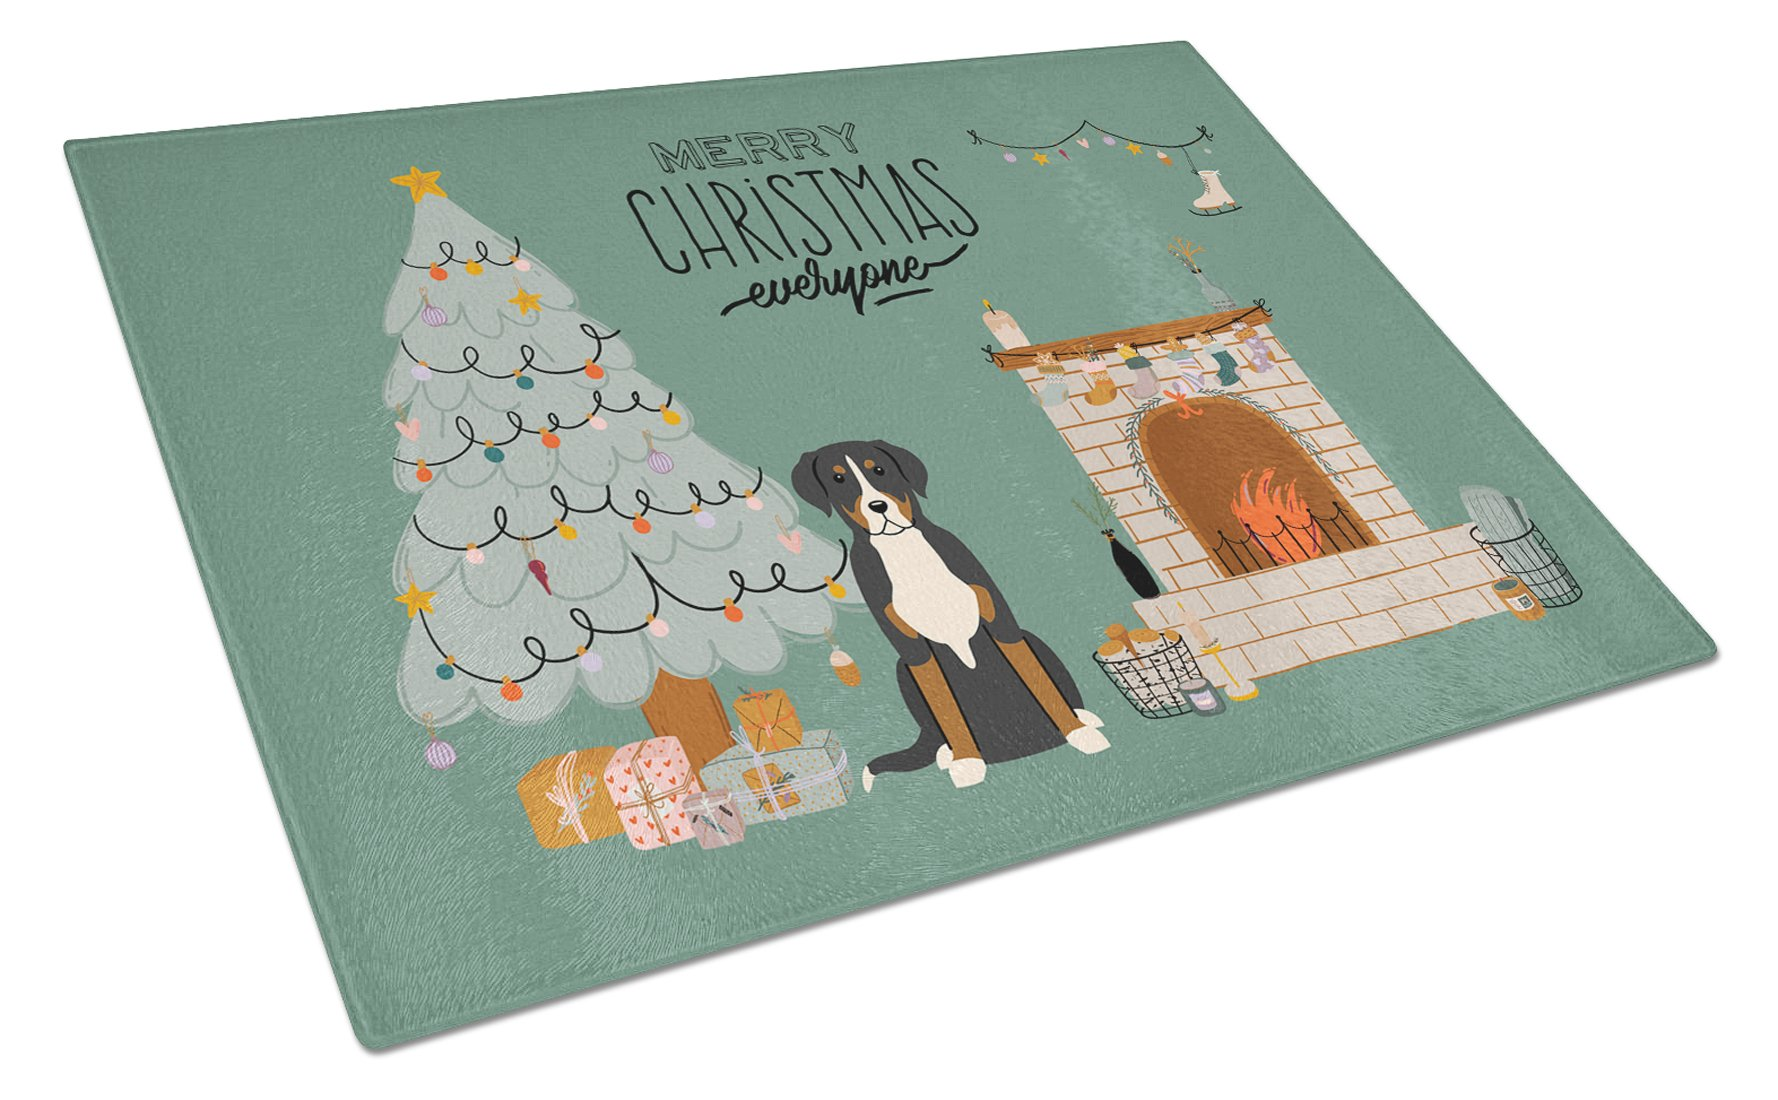 Greater Swiss Mountain Dog Christmas Everyone Glass Cutting Board Large CK7600LCB by Caroline's Treasures